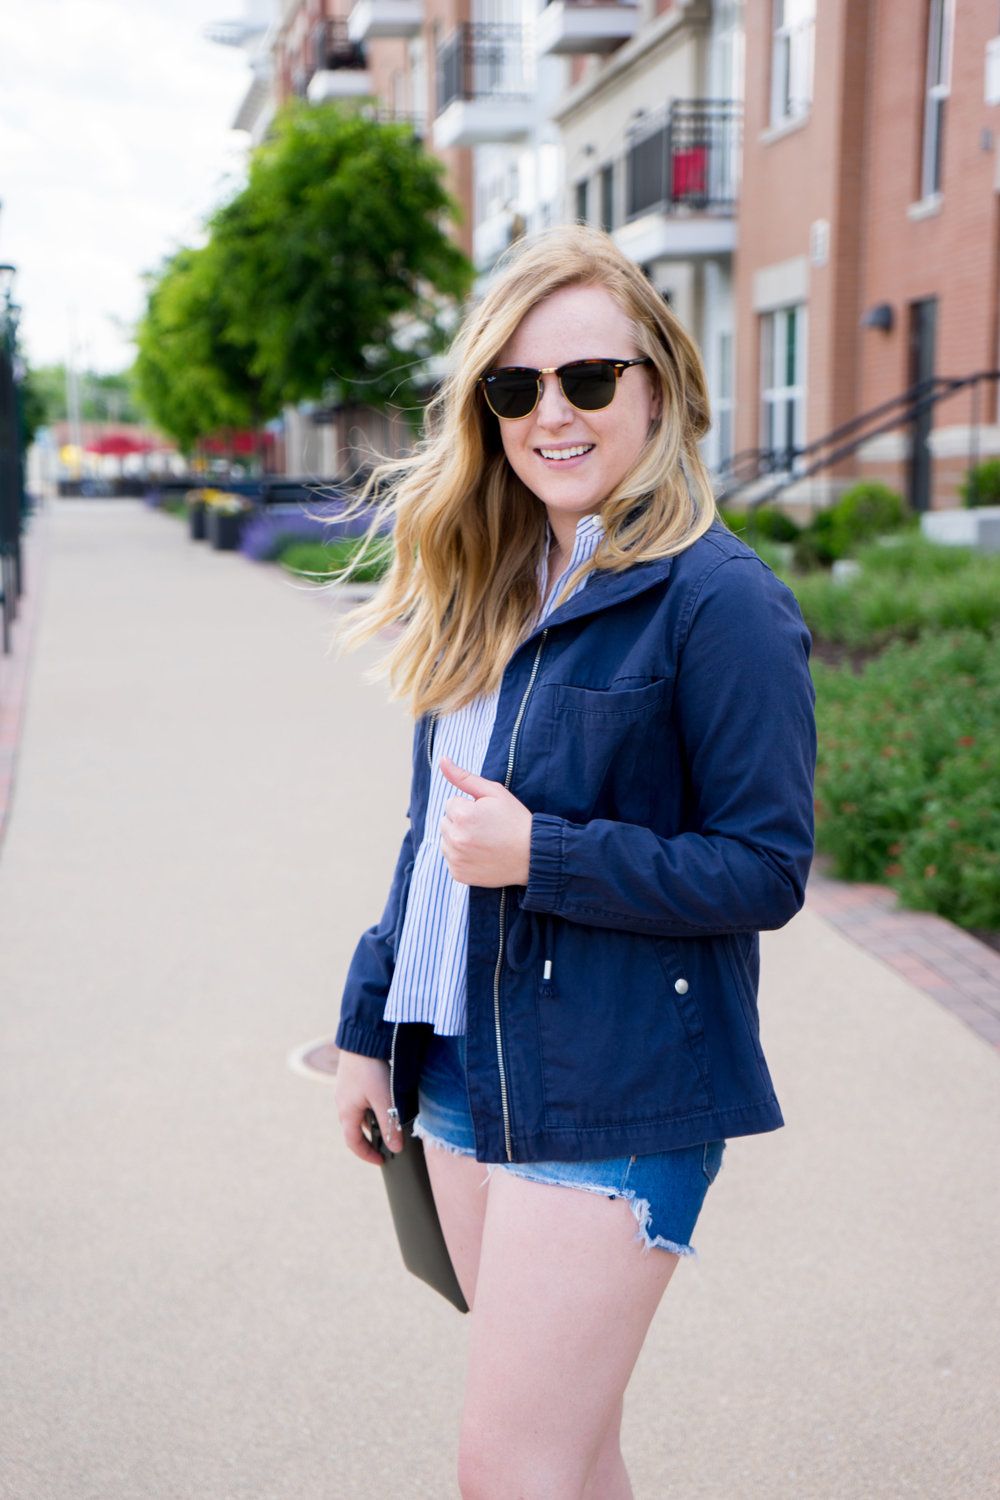 Maggie a la Mode - Most Popular Items 2018 Old Navy Twill Field Jacket